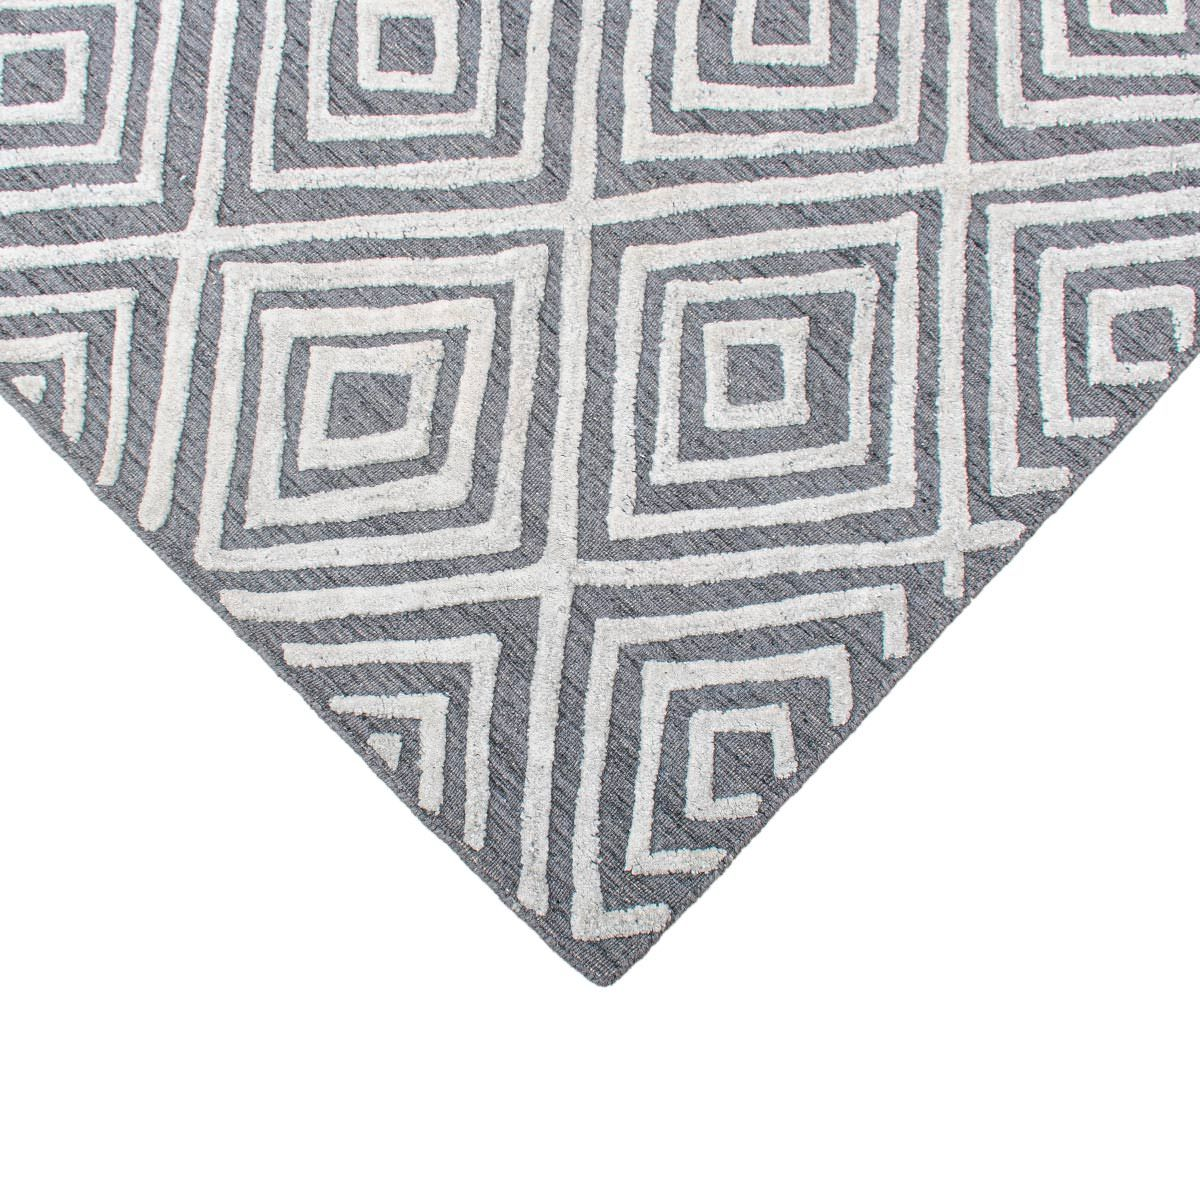 Zara Rug 01 Grey/White 3